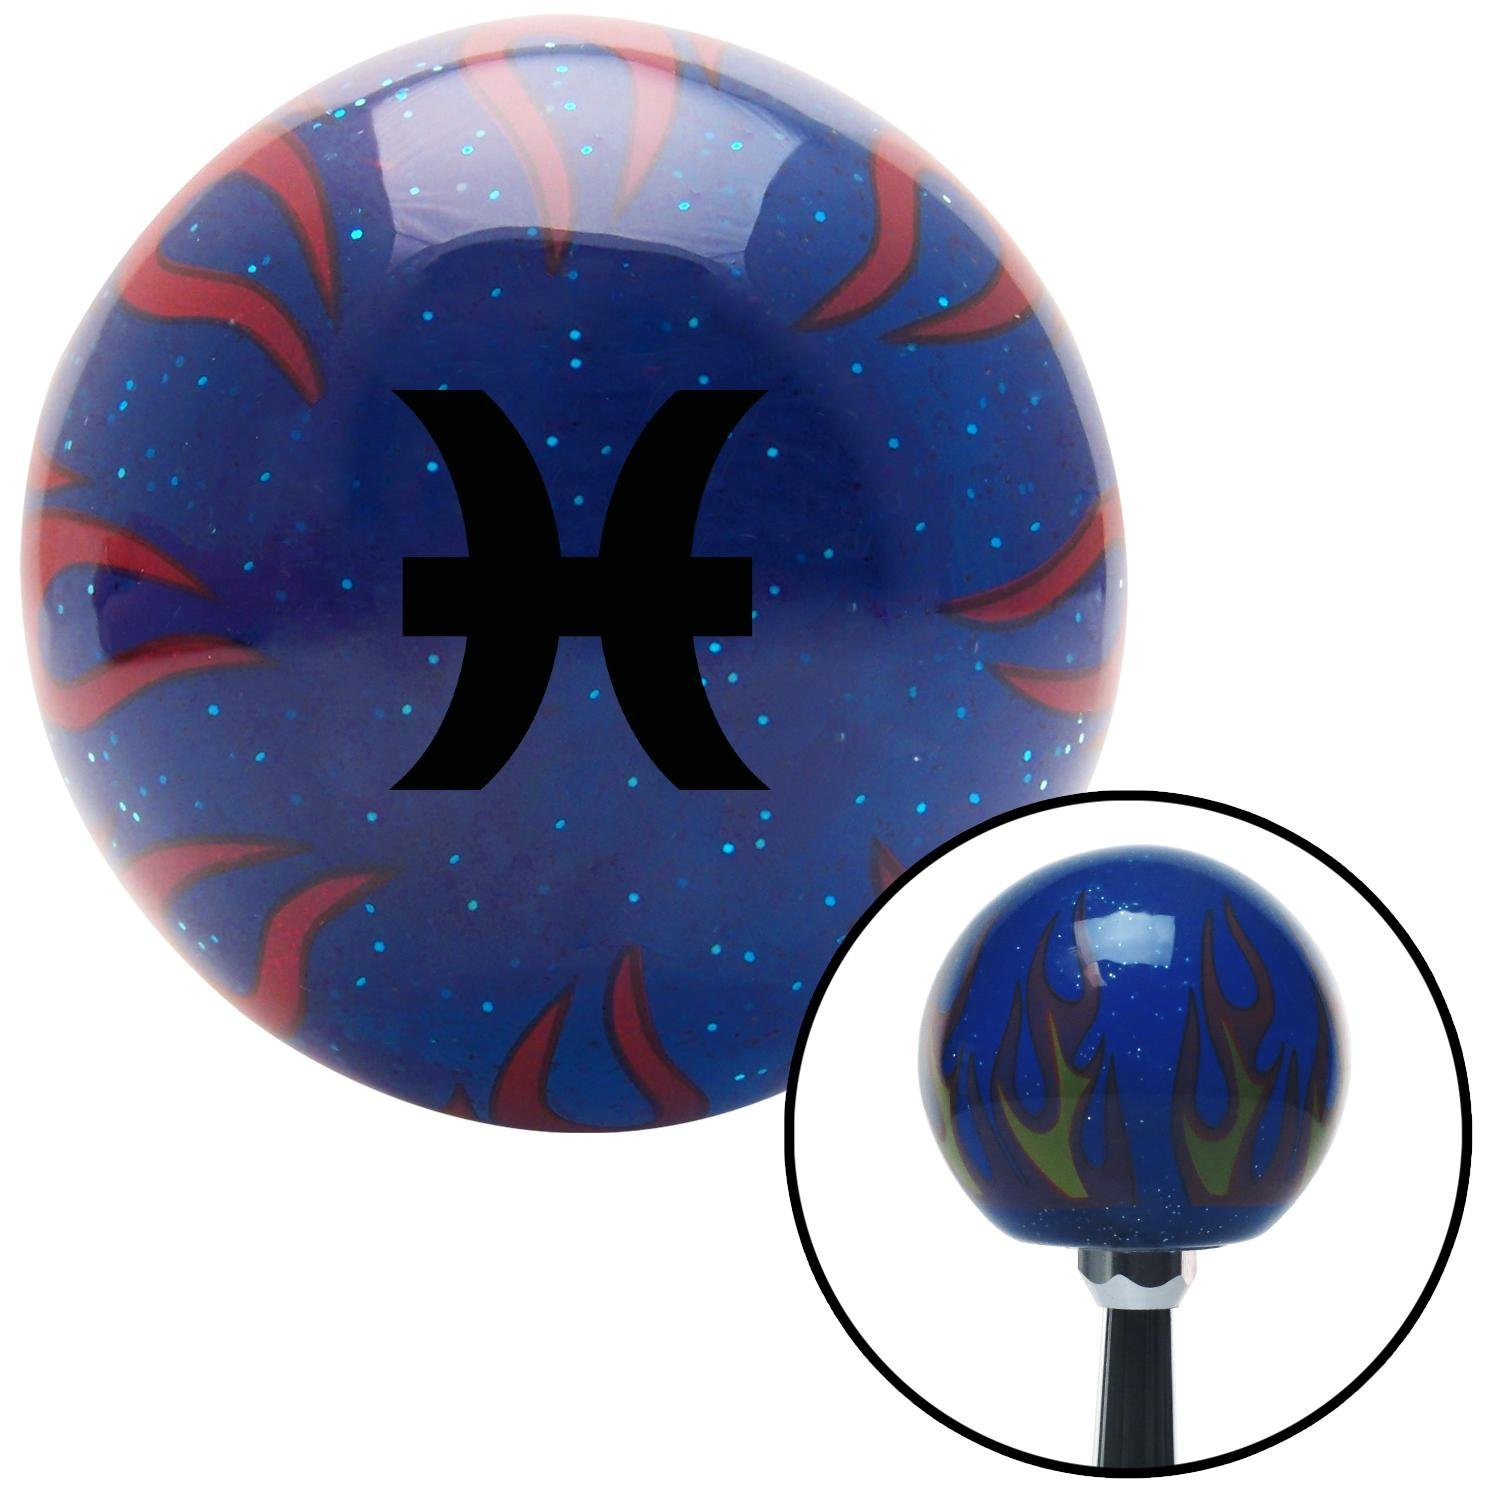 American Shifter 298013 Shift Knob Black Pisces Blue Flame Metal Flake with M16 x 1.5 Insert